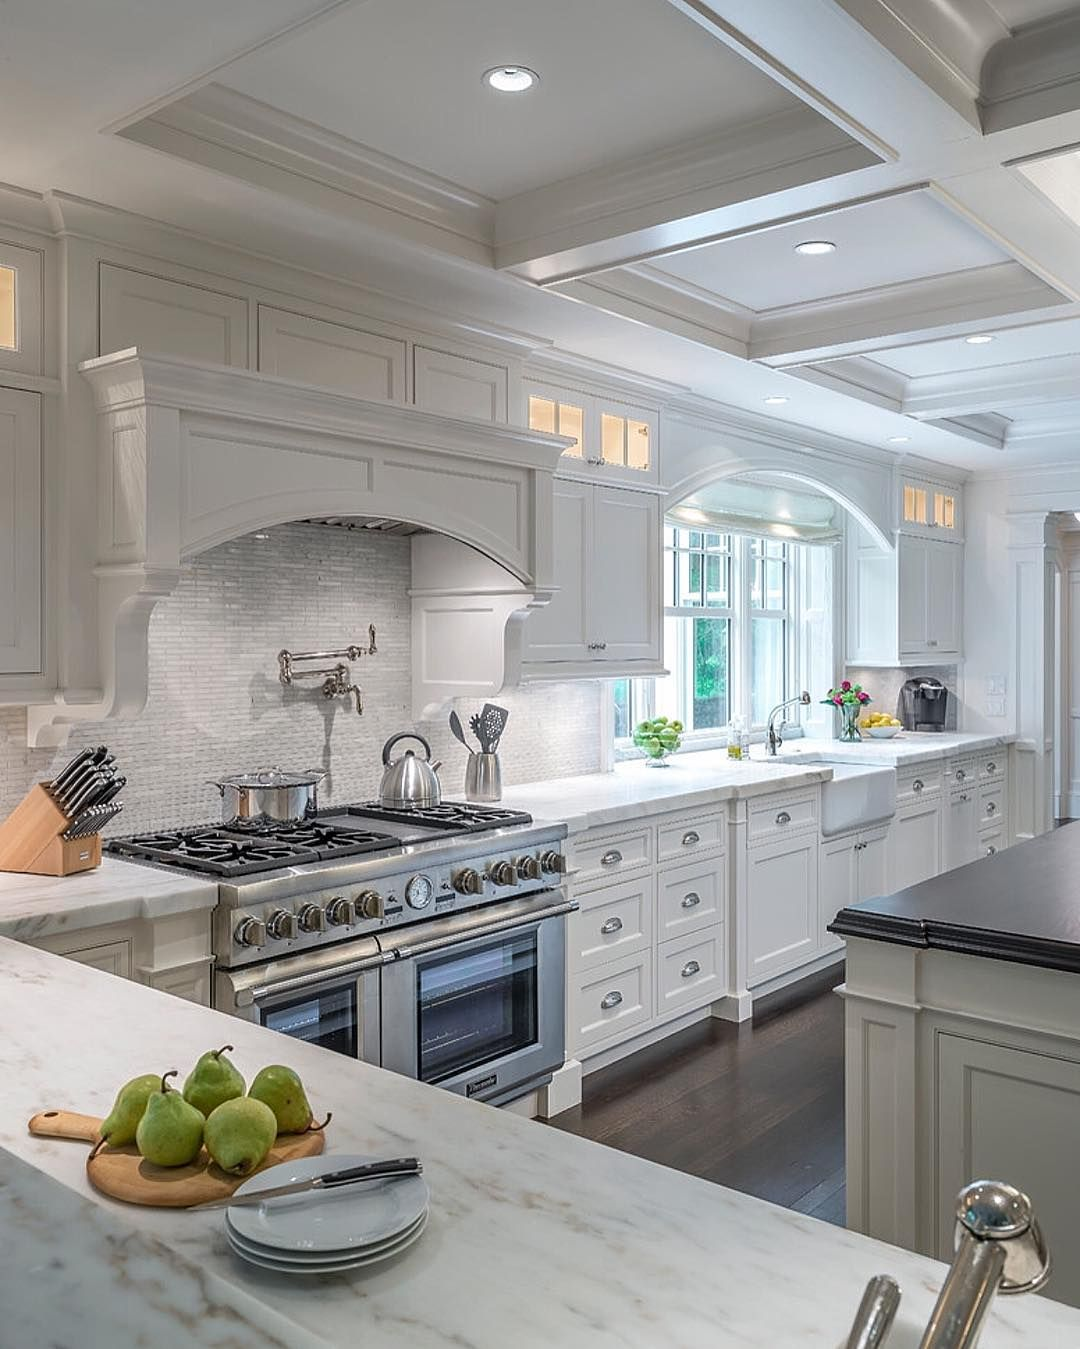 Ceiling Kitchen From The Rich Hardwood Floors To The Spectacular Coffered Ceiling